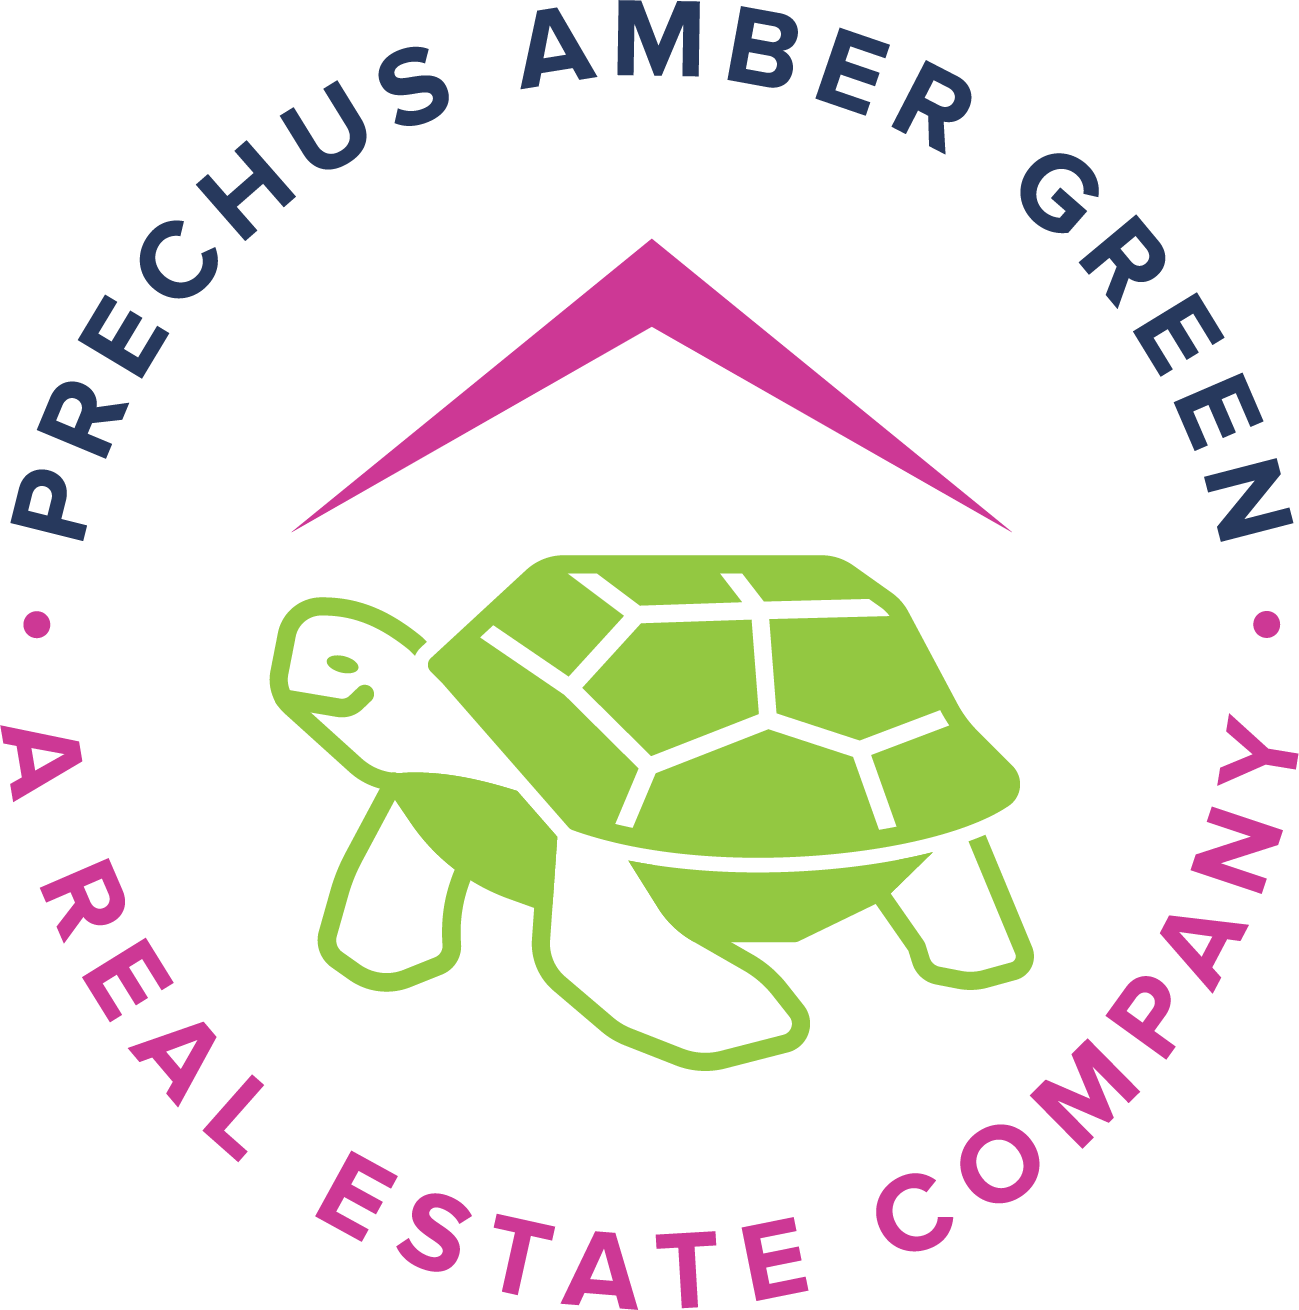 Prechus Green, Broker-Owner/CEO